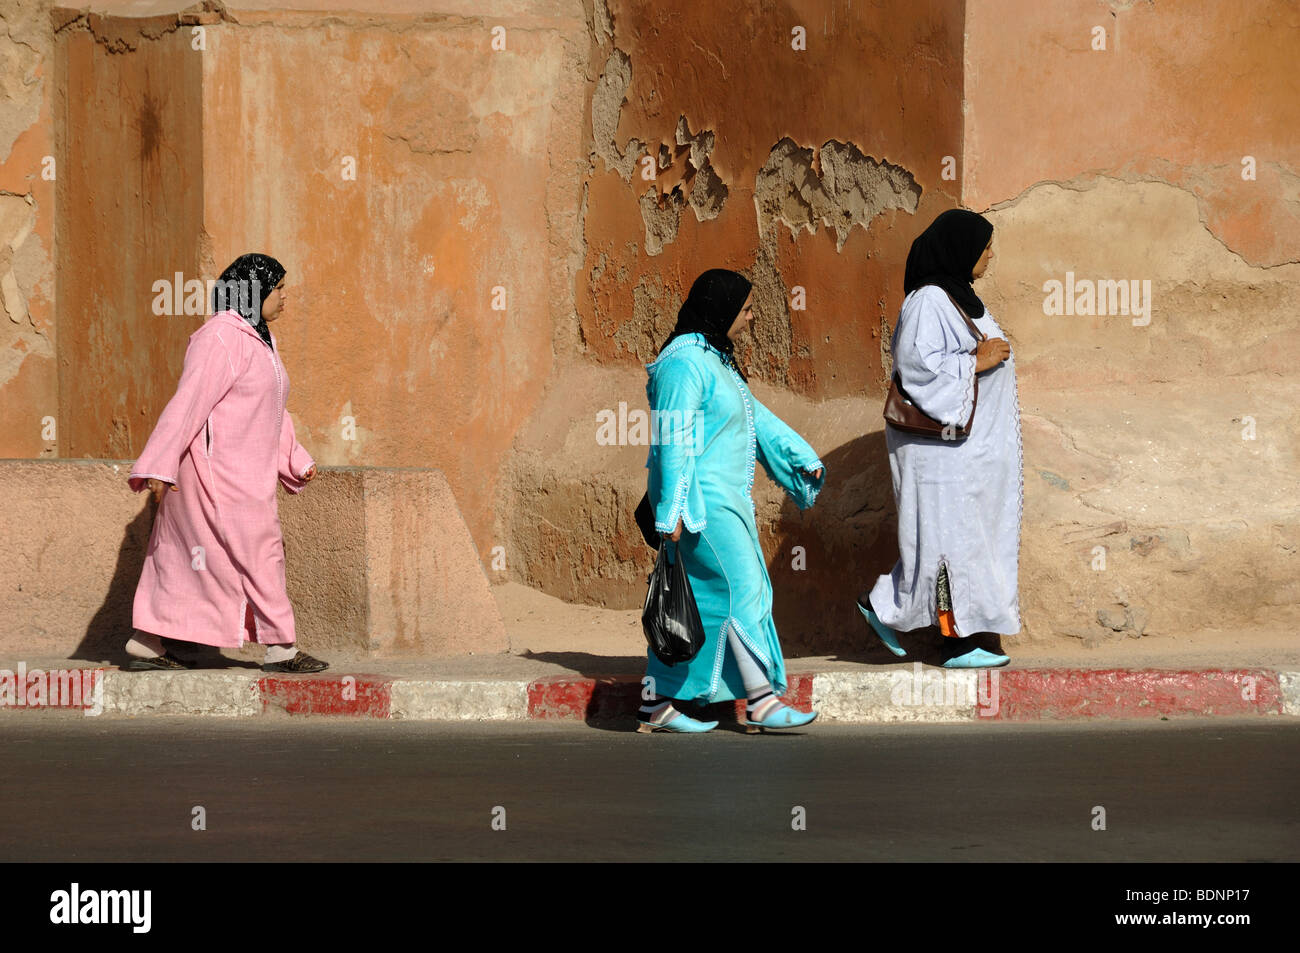 Moroccan Women Wearing Headdresses & Colorful Colourful Costumes Walk Past the  City Walls of Marrakesh, Morocco Stock Photo